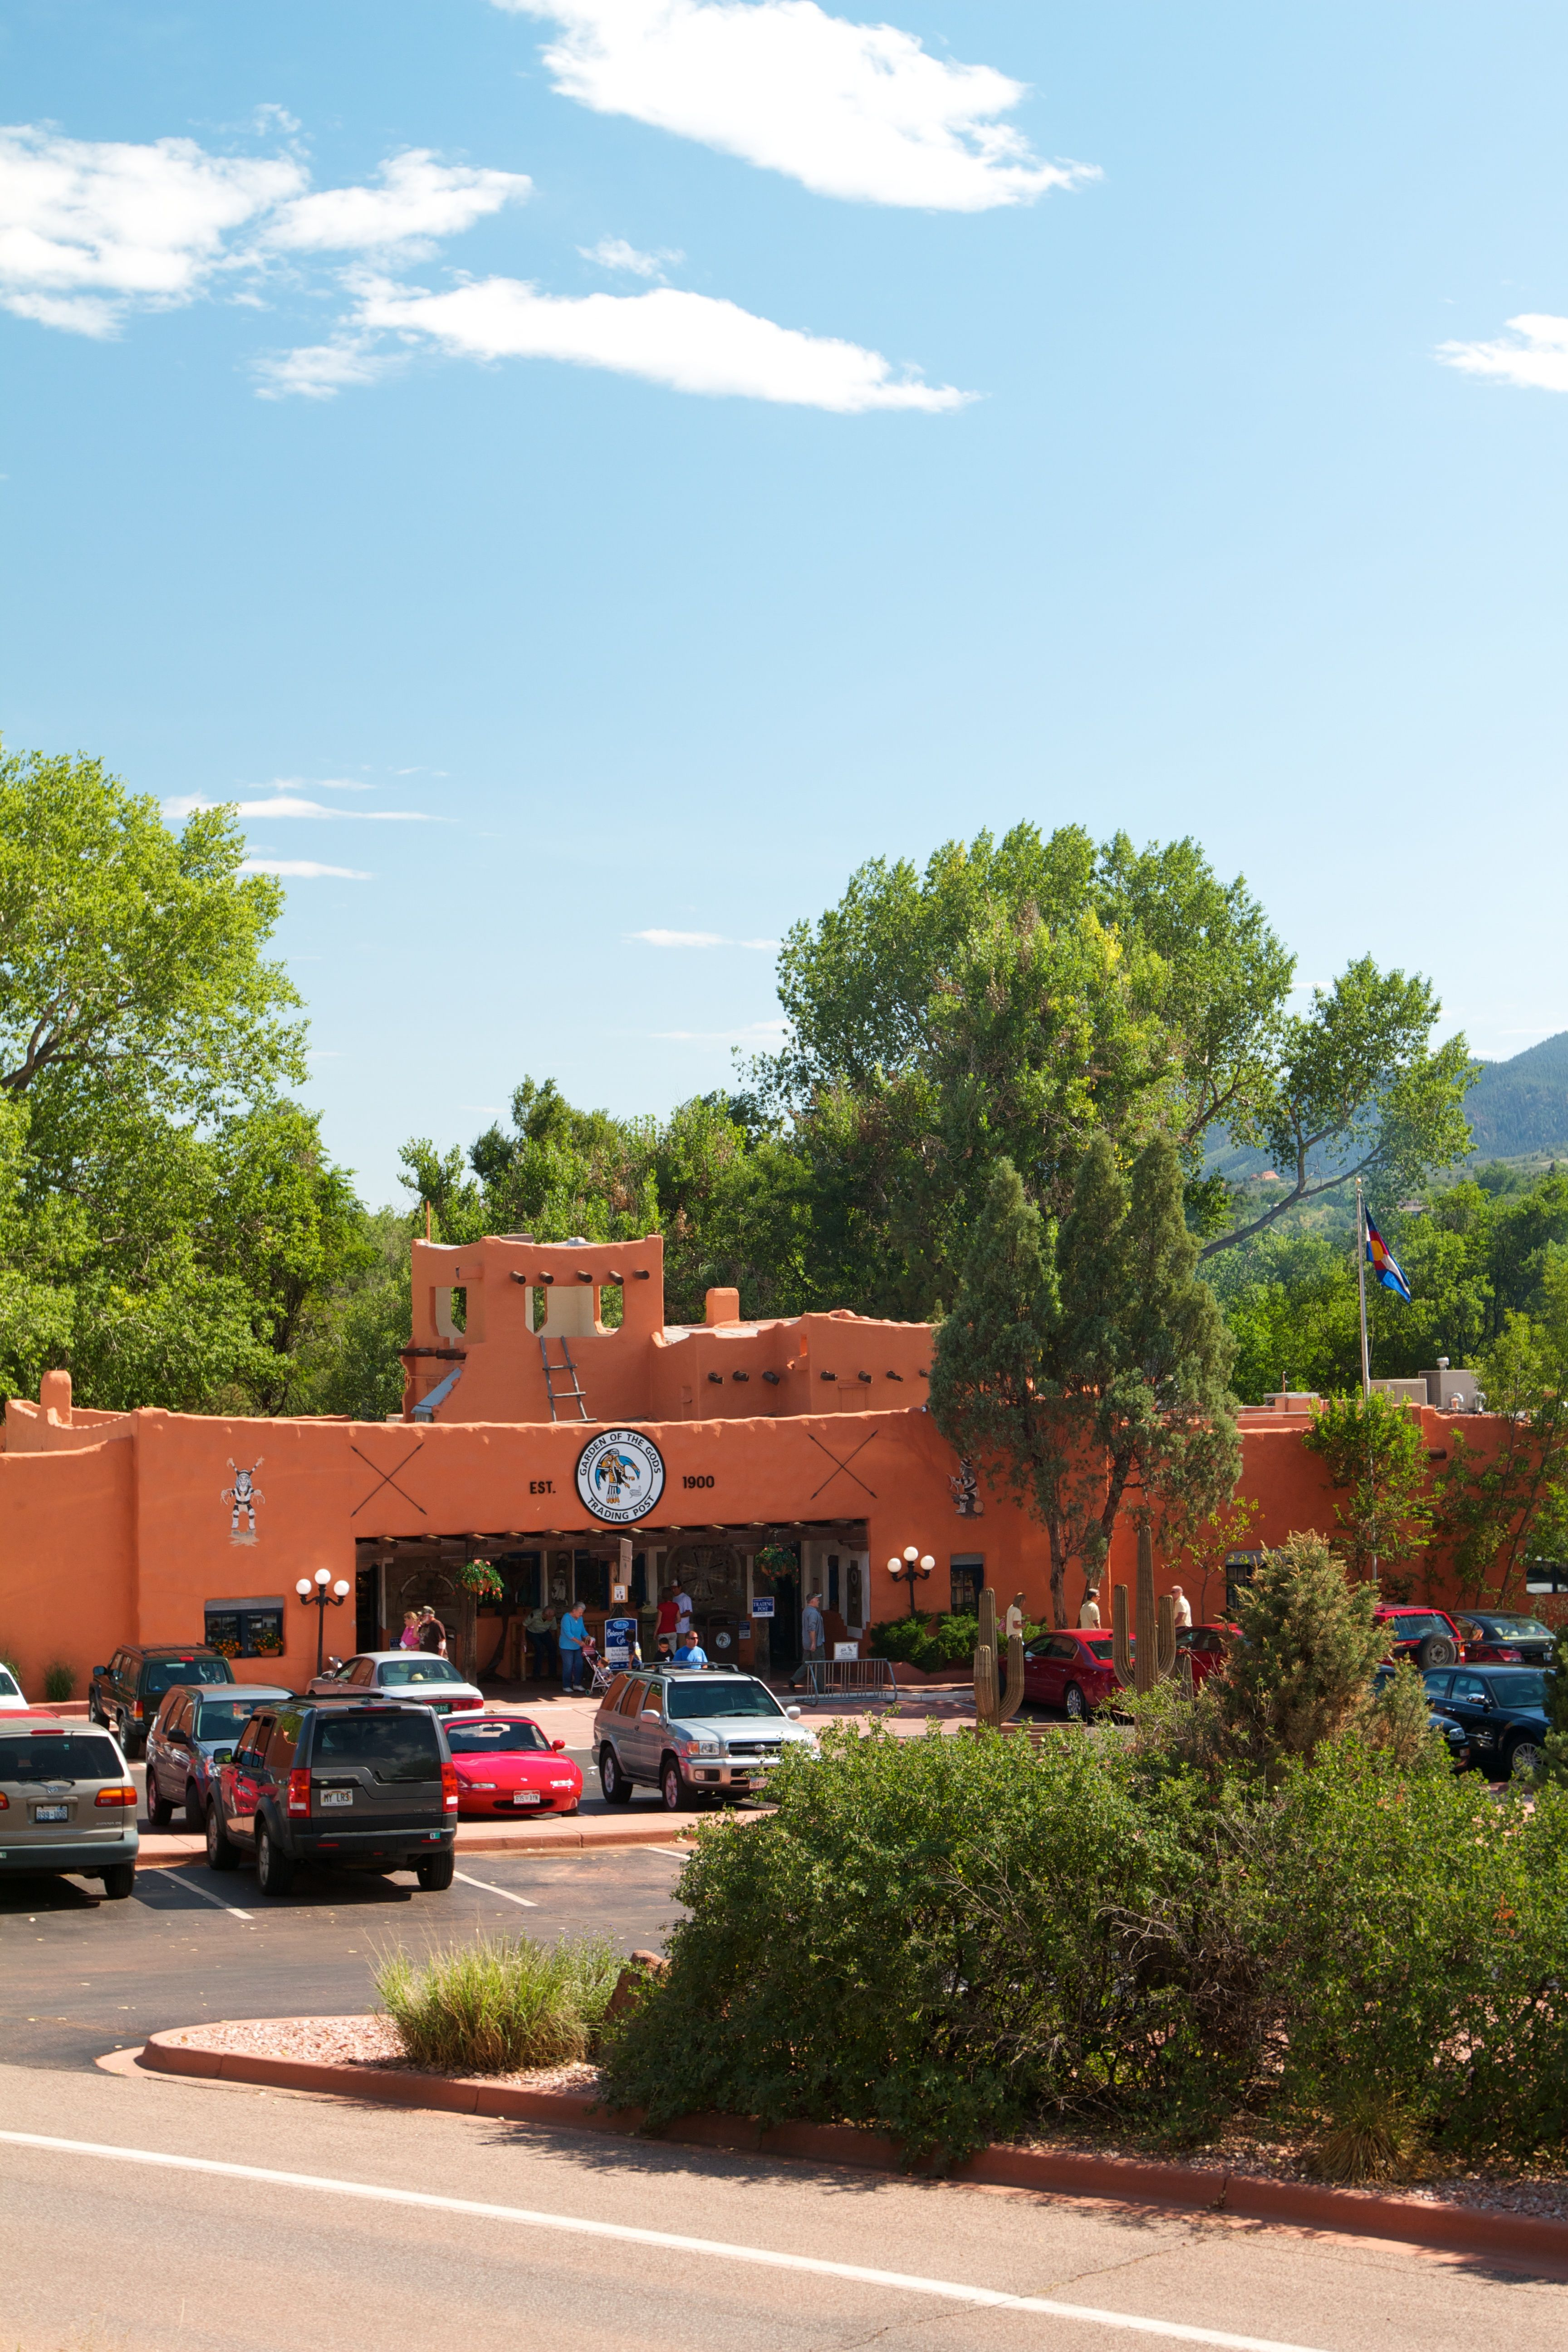 balanced rock cafe at garden of the gods trading post has some of the best sweet potato fries - Garden Of The Gods Trading Post